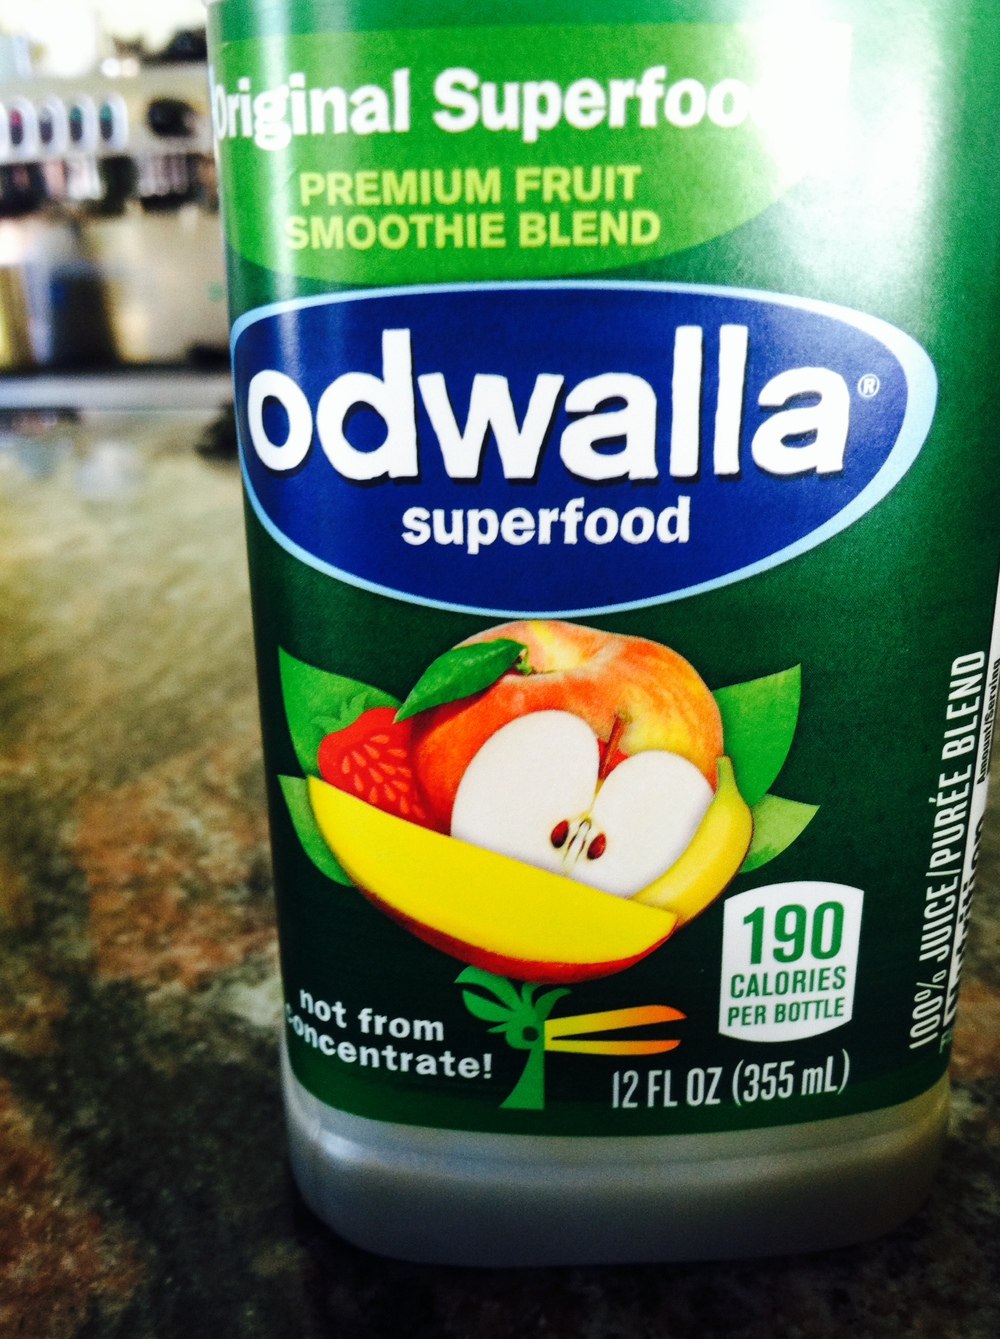 odwalla juice photo.JPG